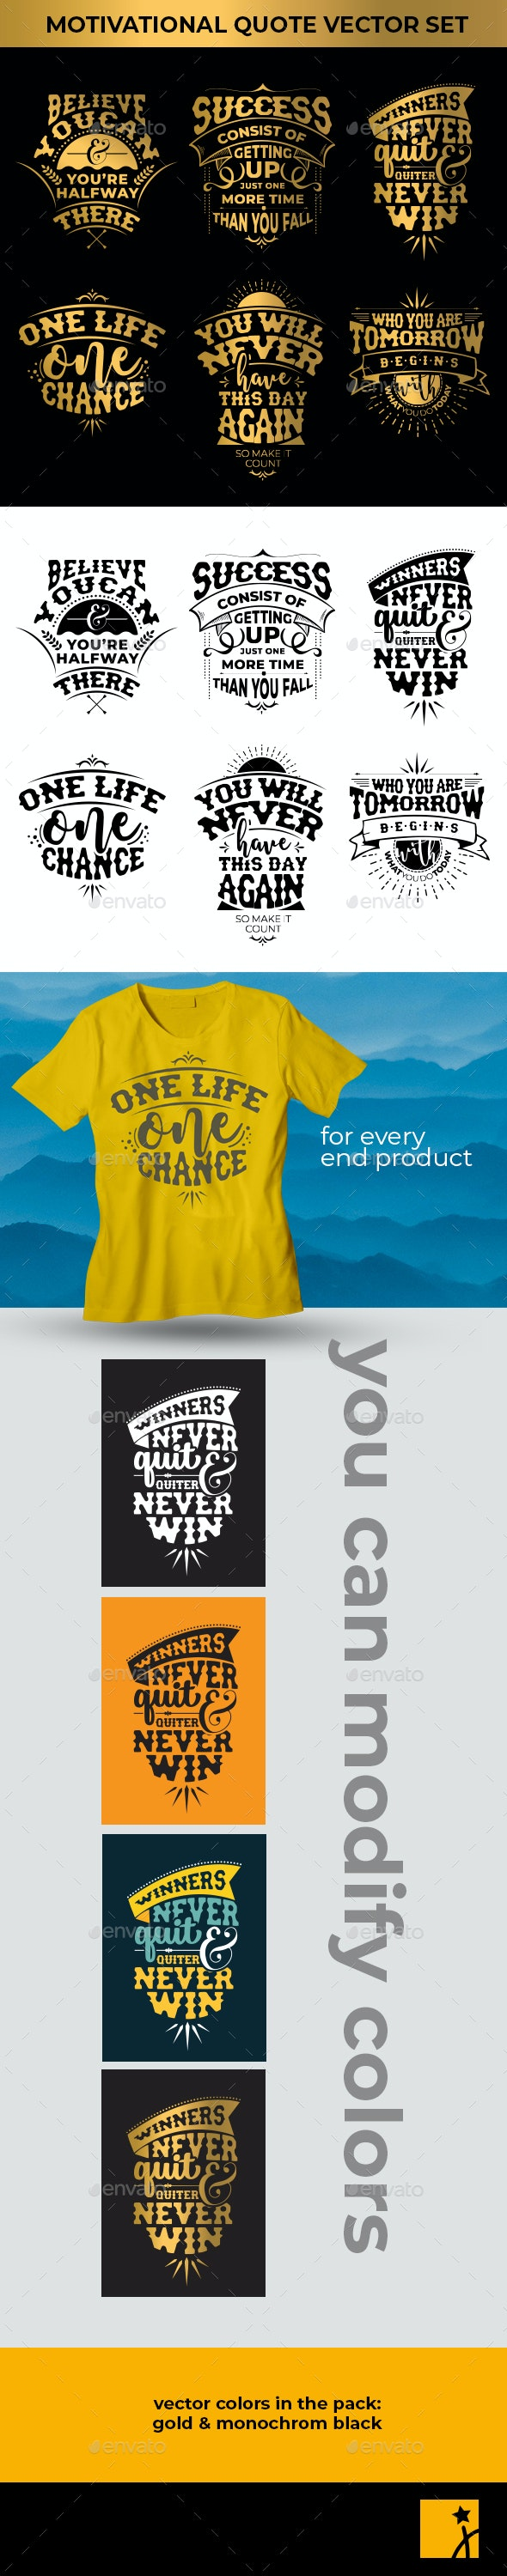 6 Motivational Quote Vector Set - Miscellaneous Seasons/Holidays